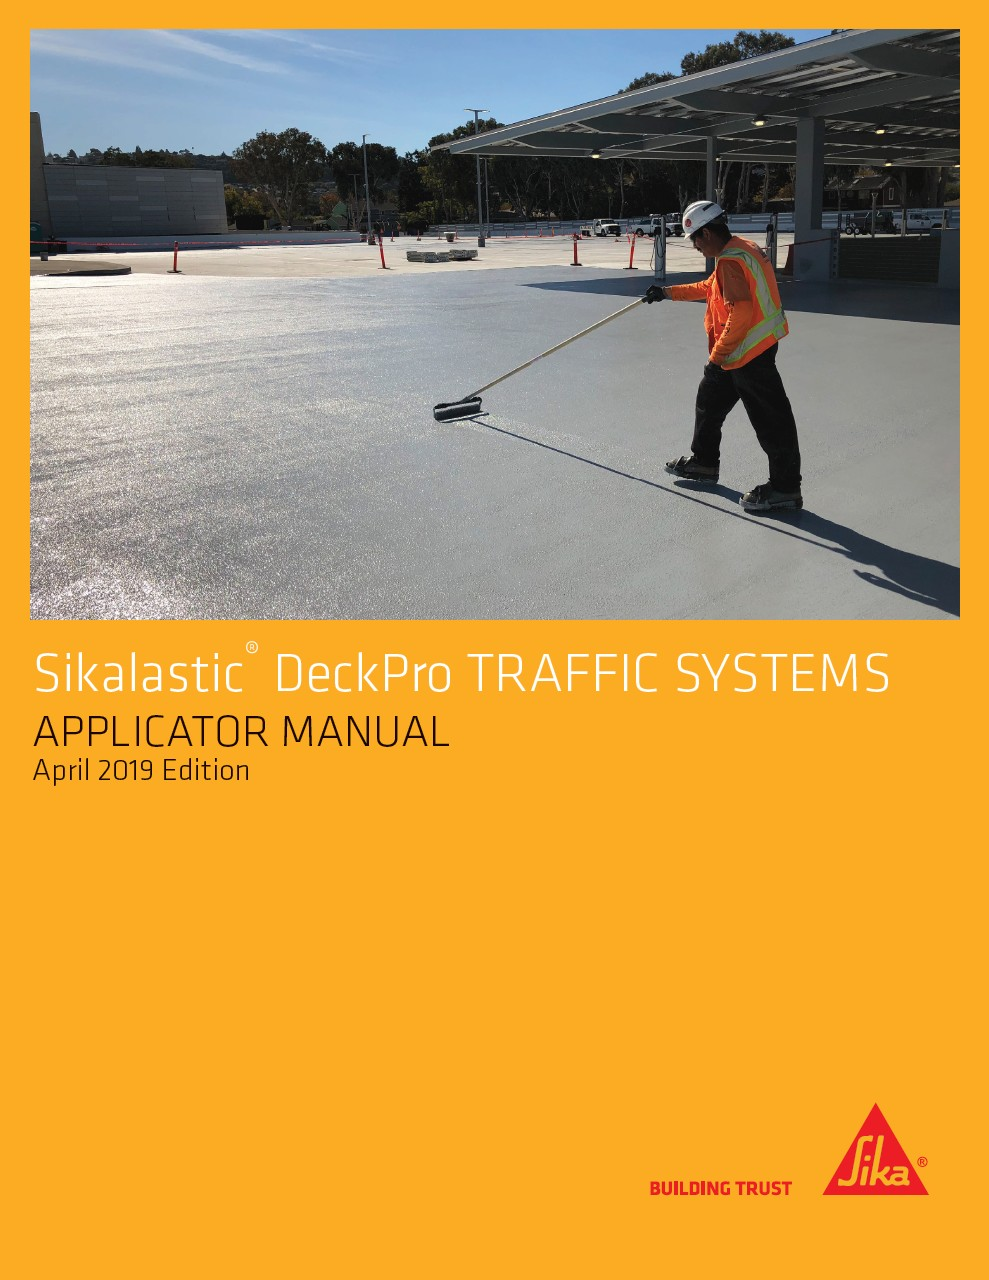 Click here to view the Sikalastic DeckPro Applicator Manual (PDF)